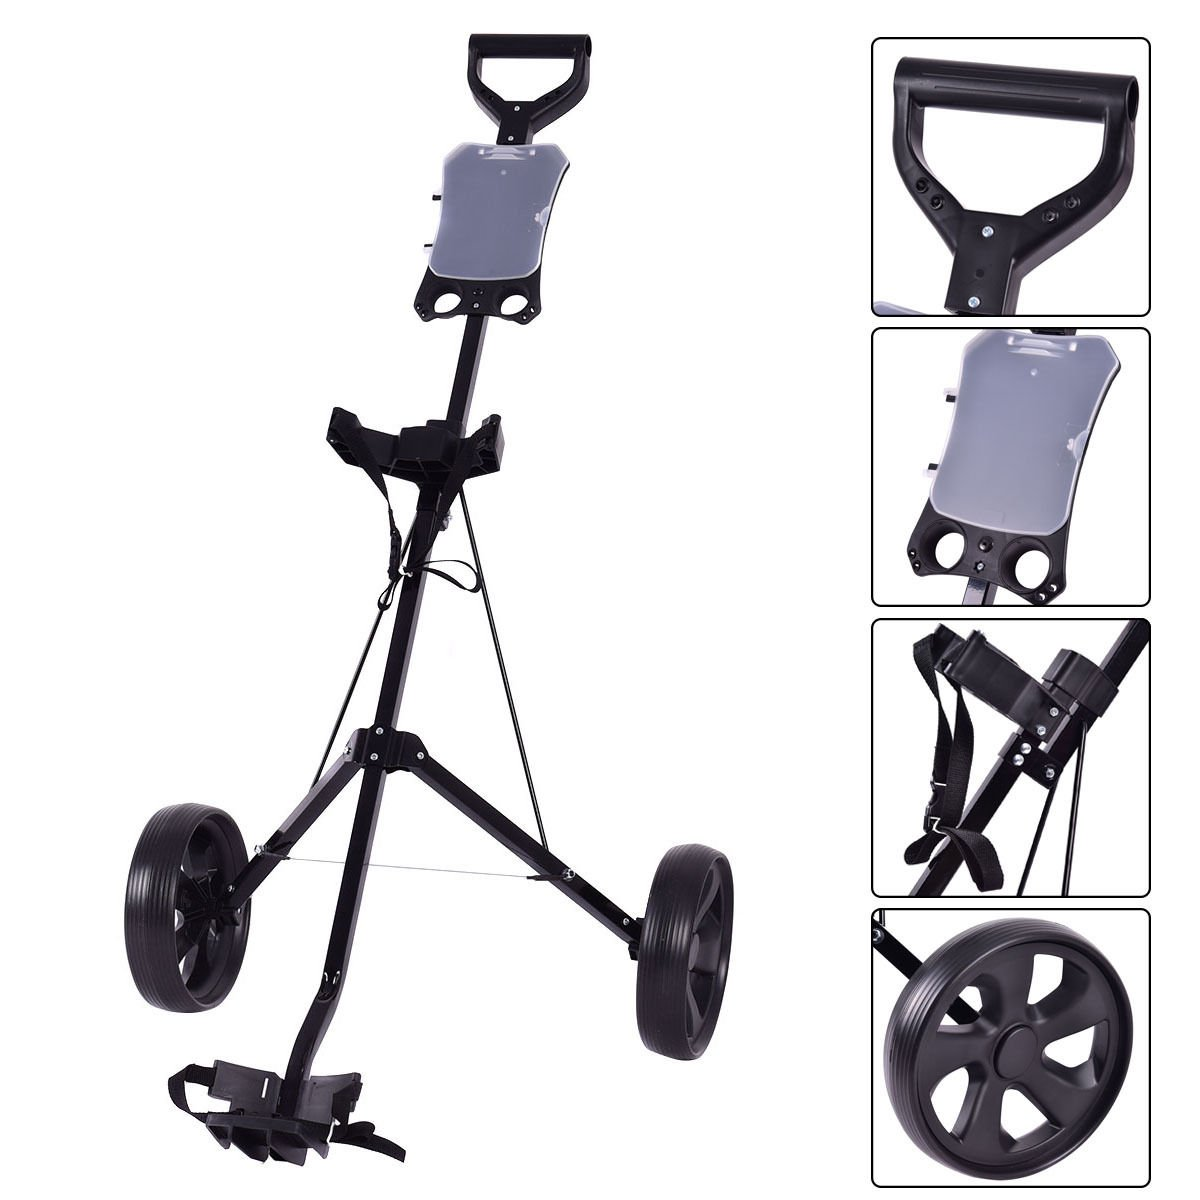 New Folding 2 Wheel Push Pull Golf Club Cart Trolley Swivel w/Scoreboard Lightweight by MTN Gearsmith